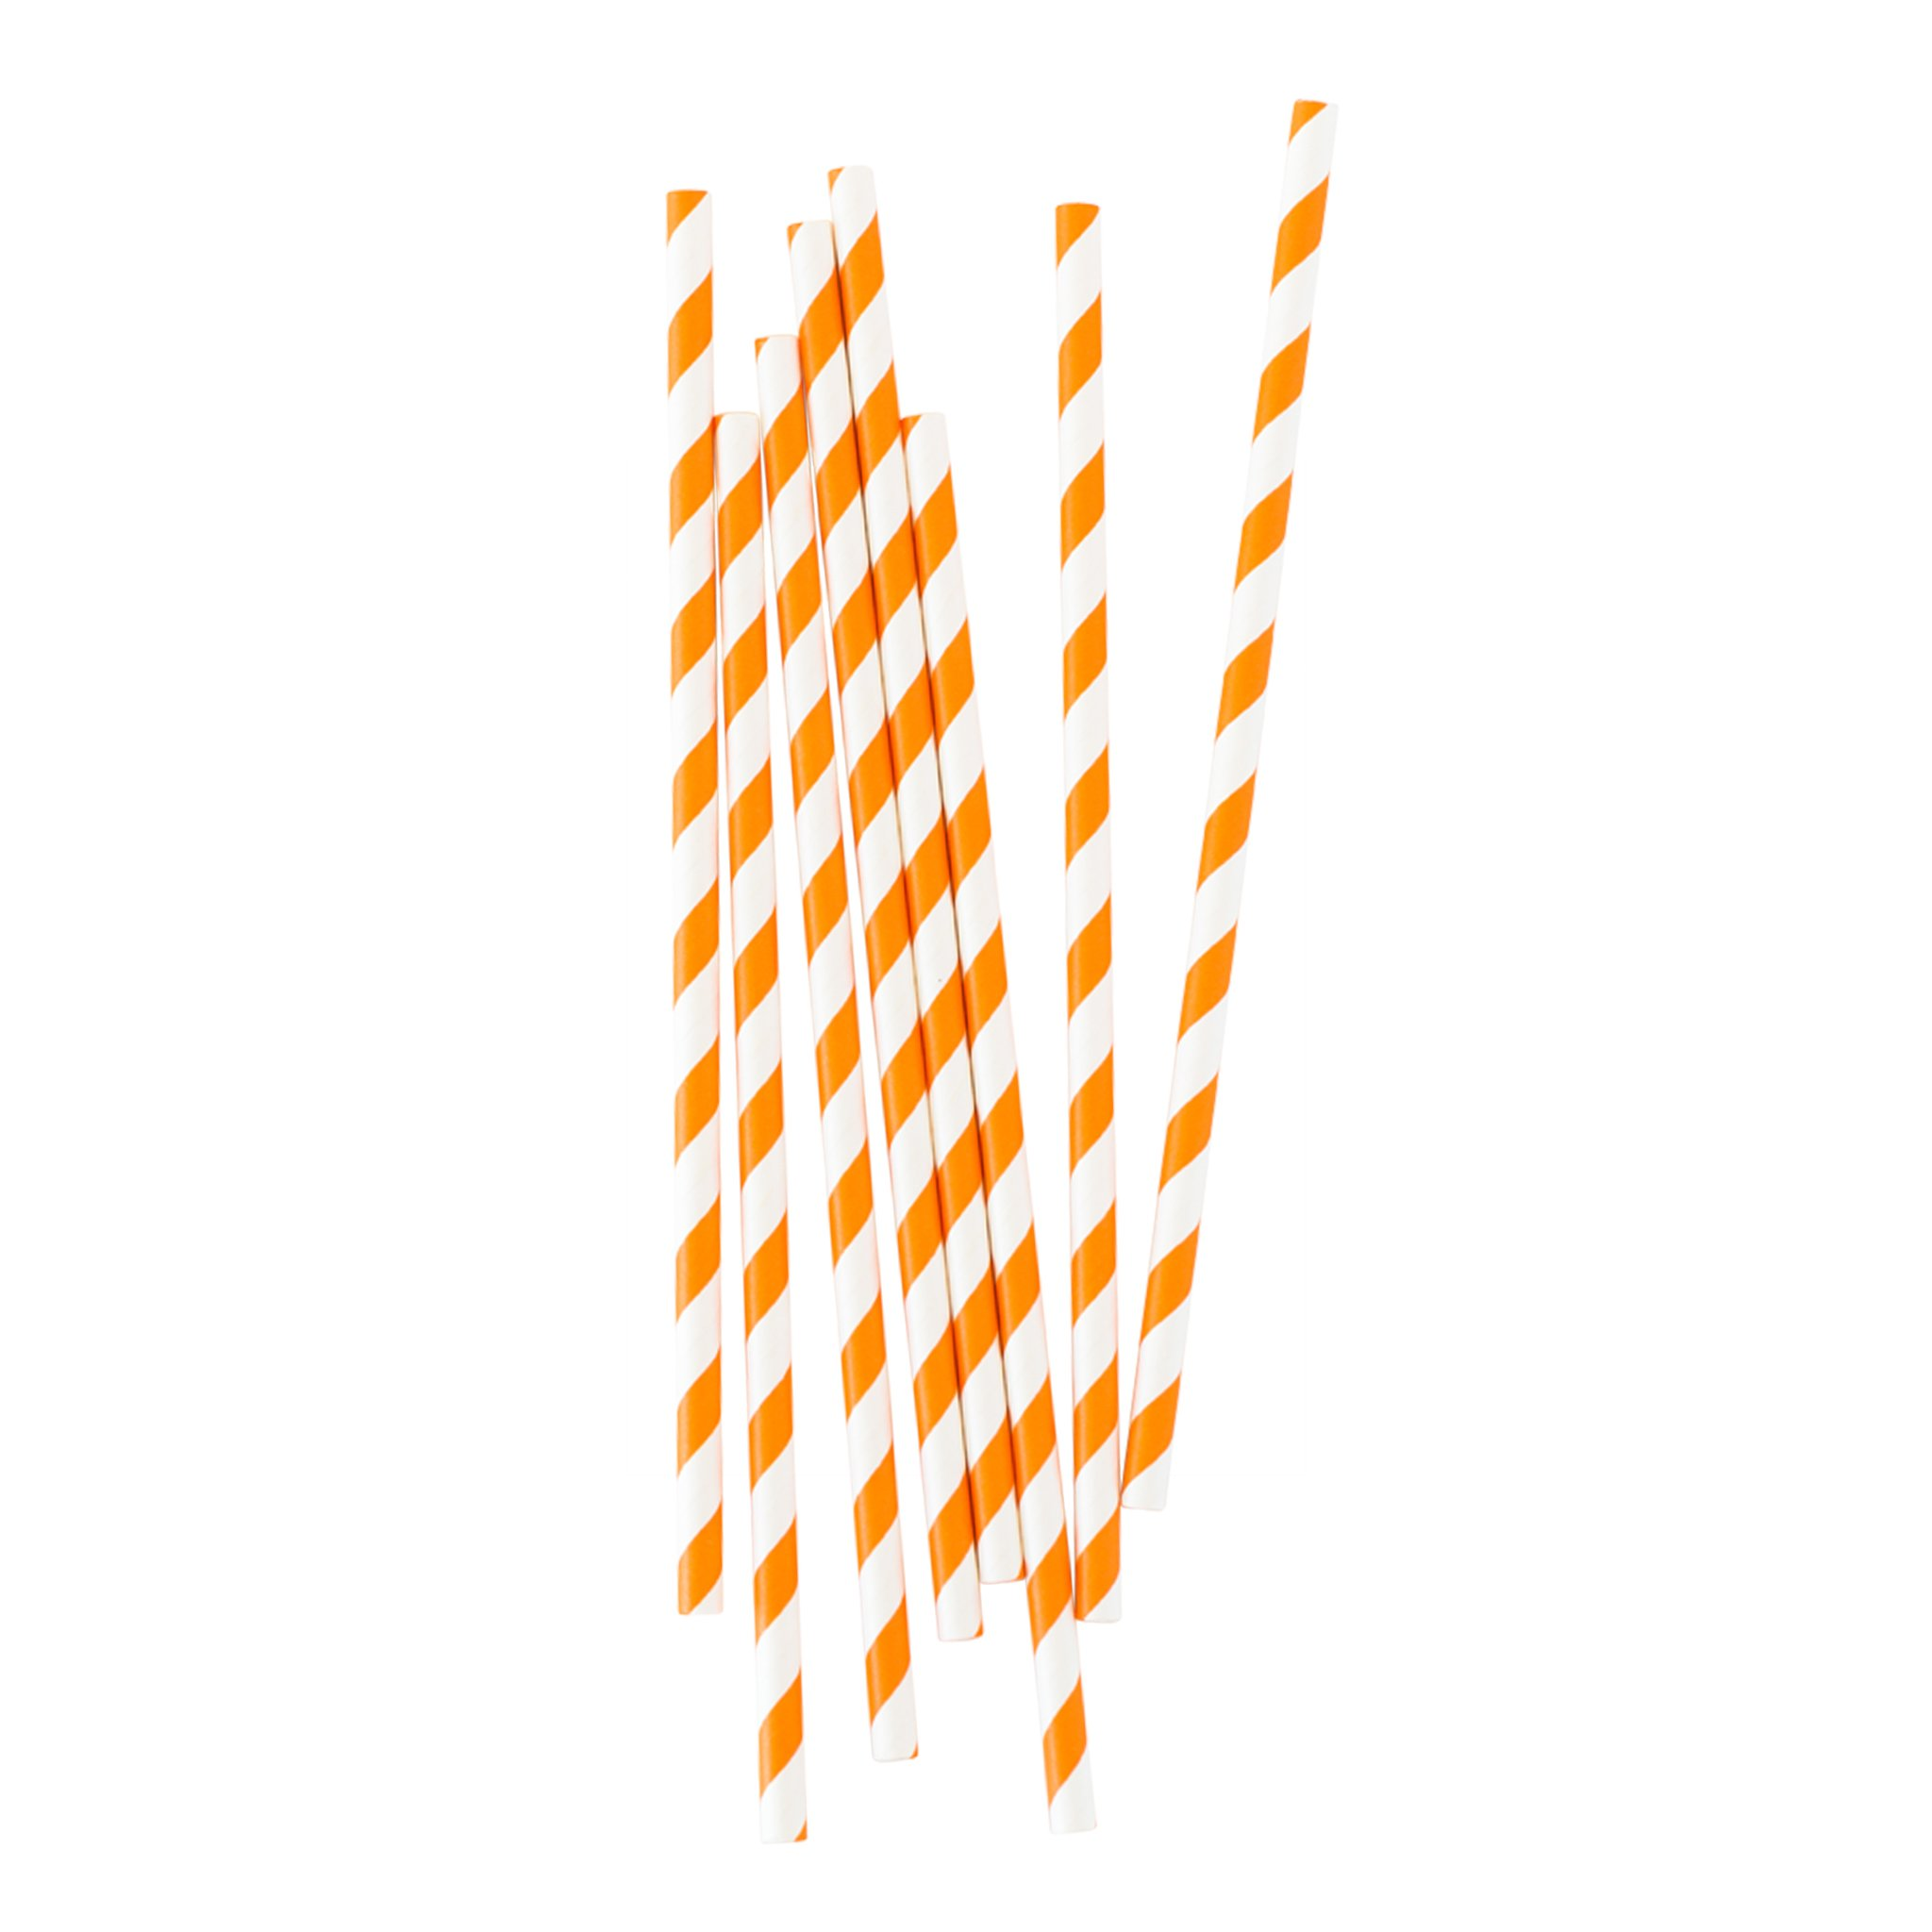 BUY ME / NEW ITEM $1.99 each Biodegradable Bright Orange Stripe Paper Straws - 25 Pack